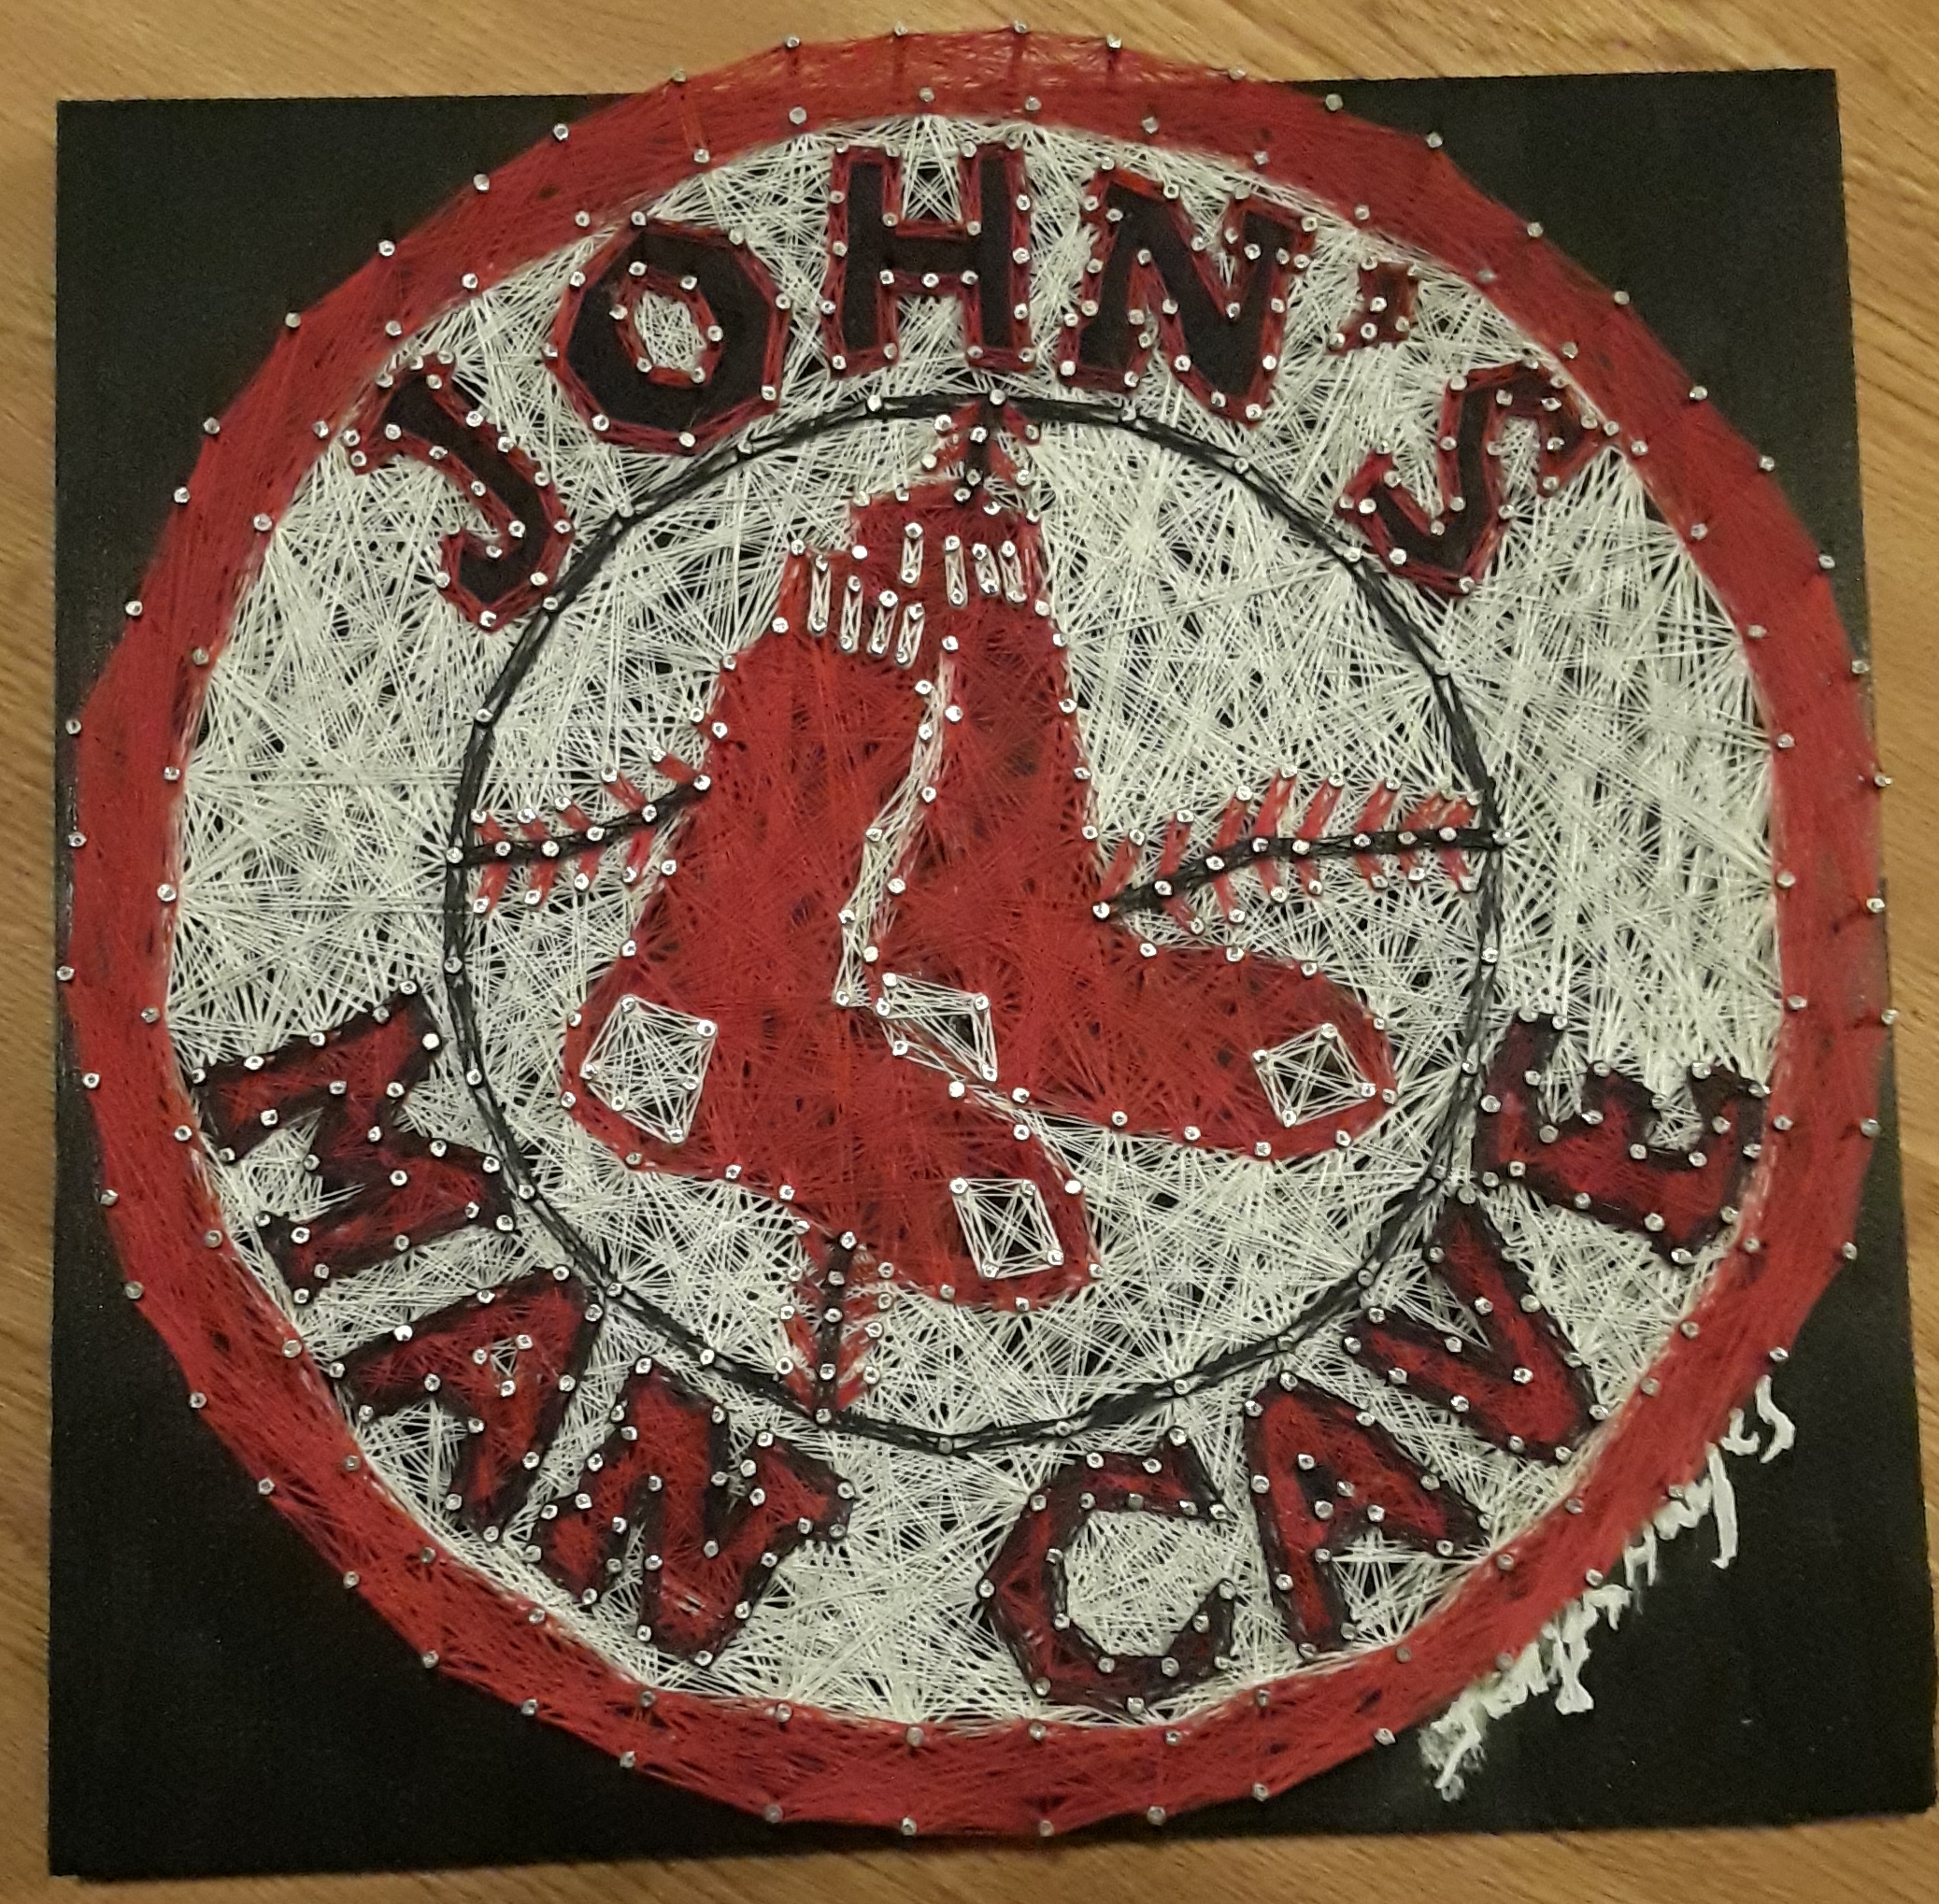 12x12 Red Sox